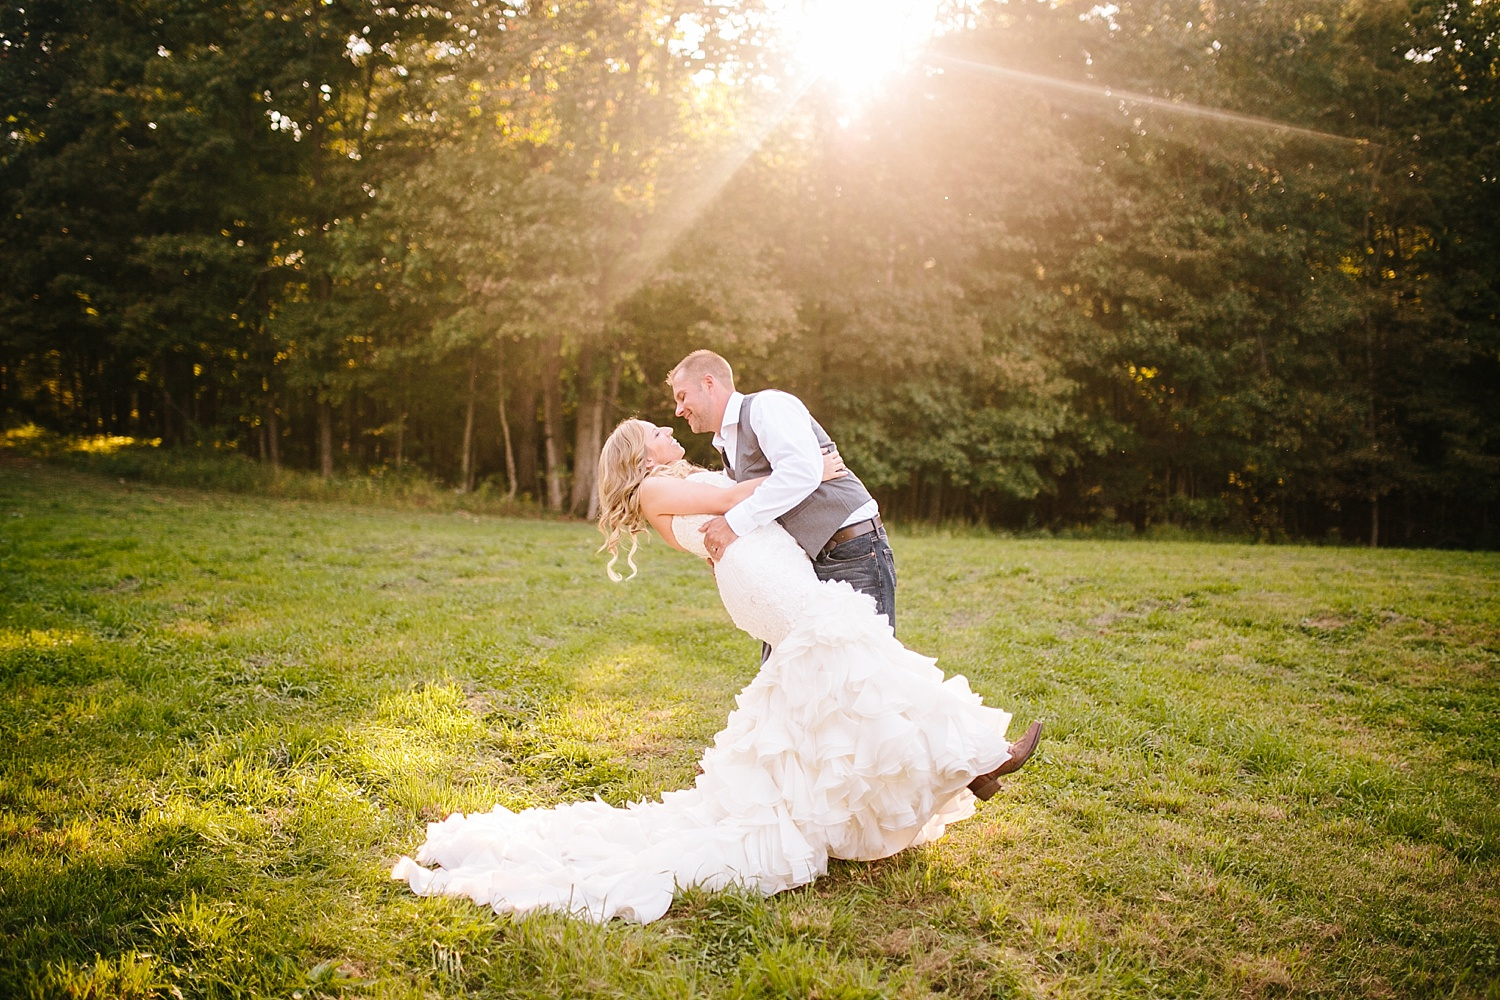 jennyryan_newbeginnings_farmstead_upstatenewyork_wedding_image098.jpg